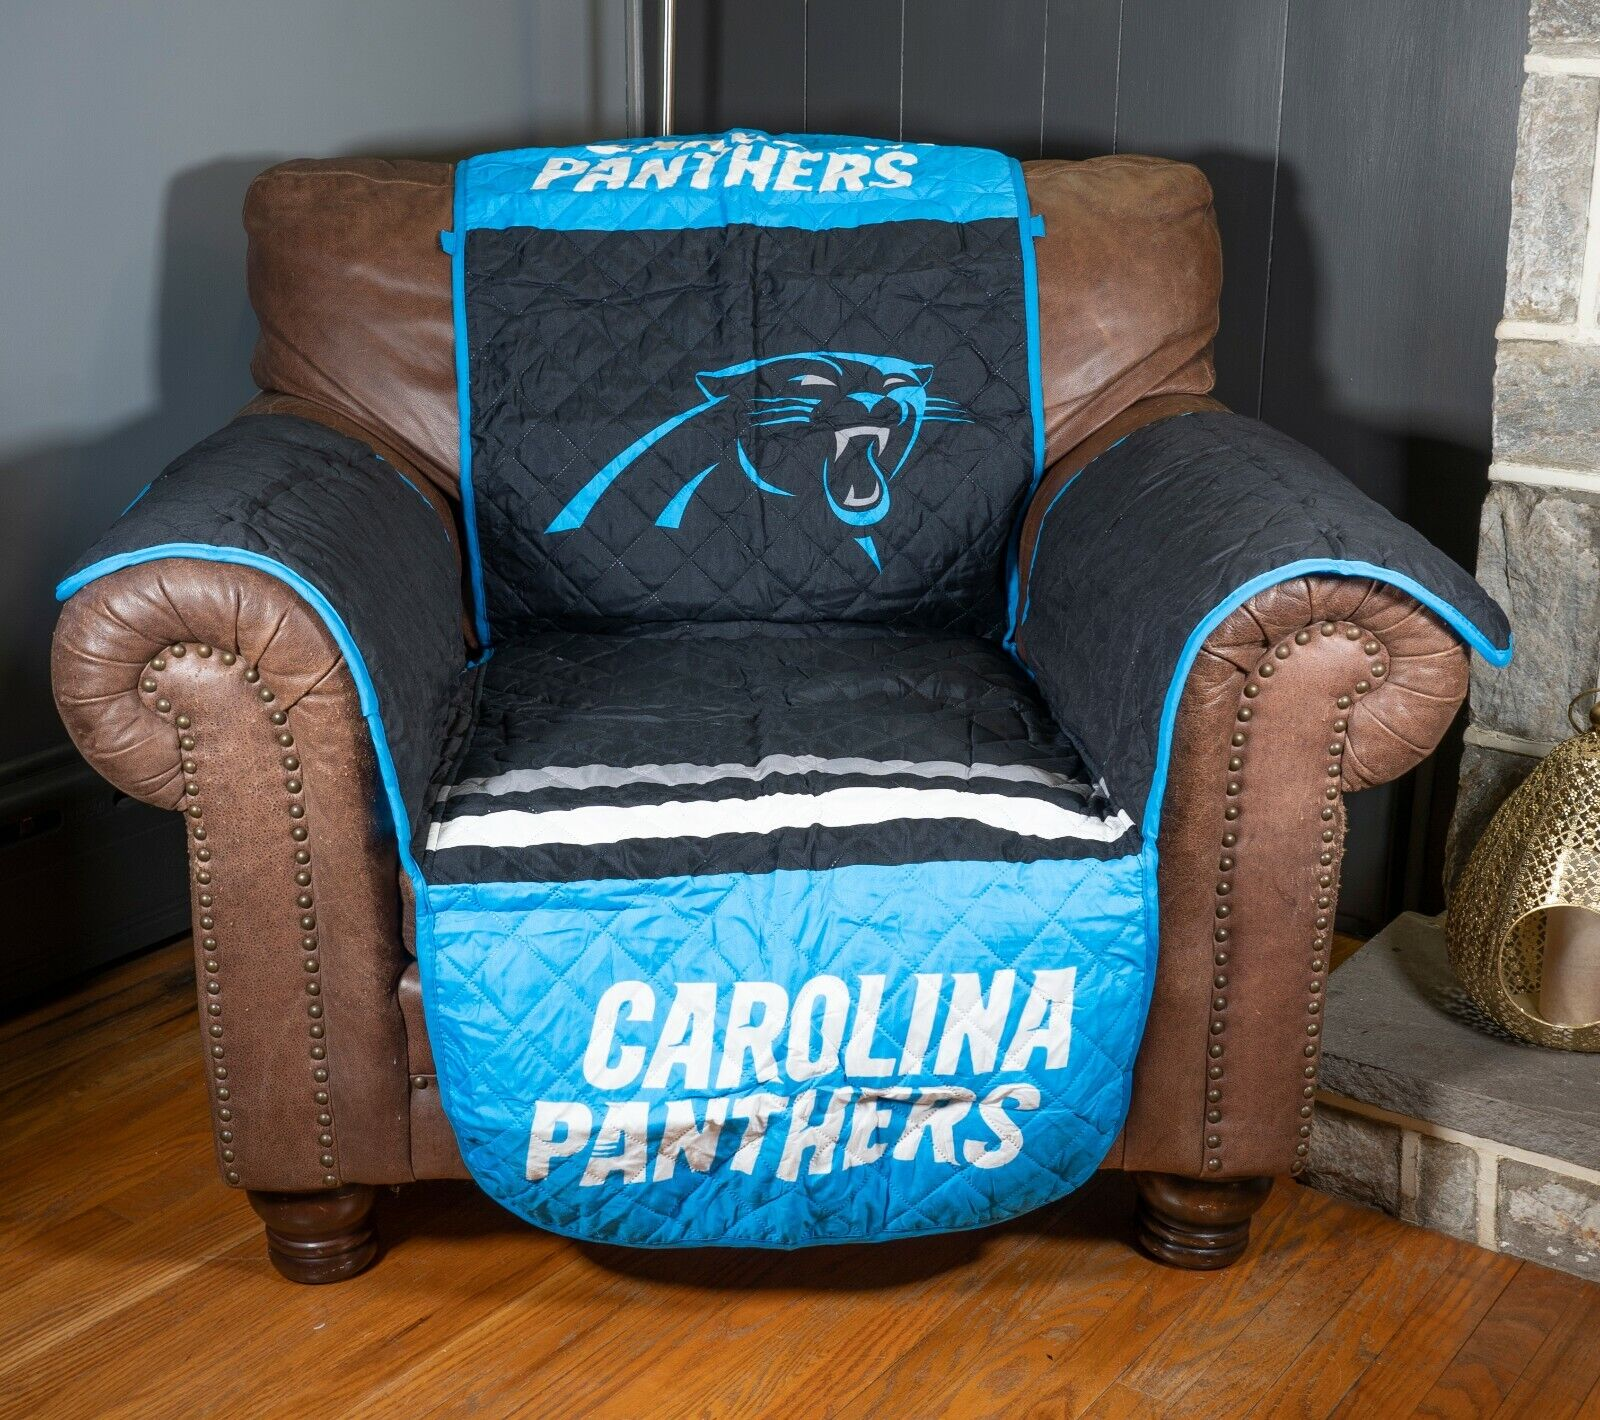 Carolina Panthers  NFL Football Armchair Recliner Protector Cover Protector NEW Furniture